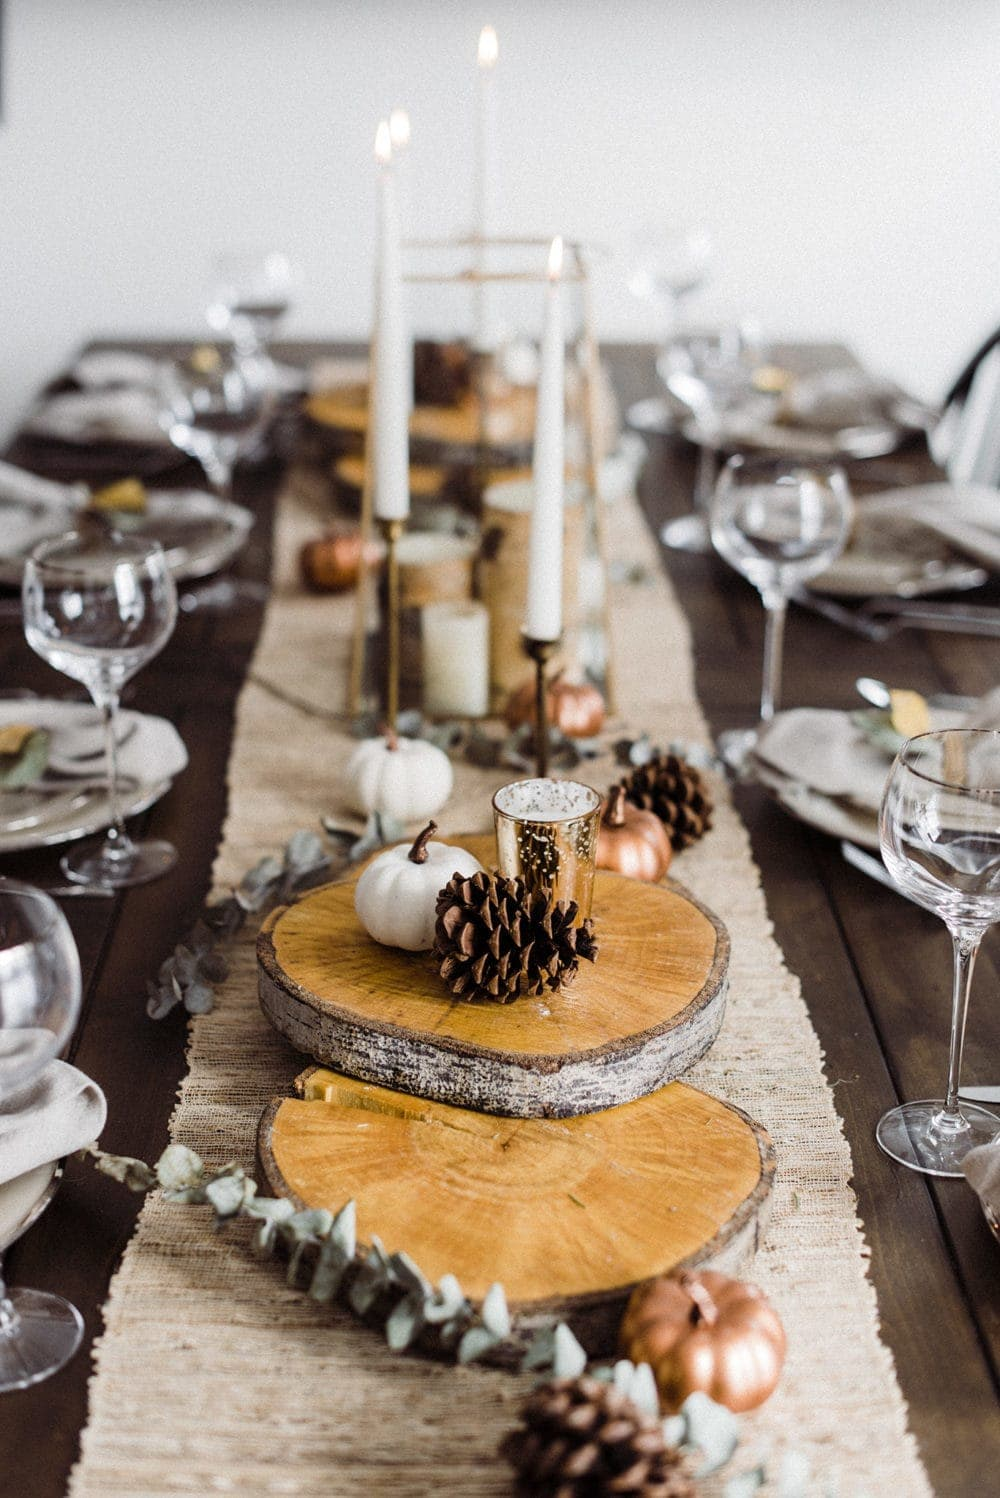 Thanksgiving table centerpieces with a jute table runner, round tree slices and vintage brass candlesticks